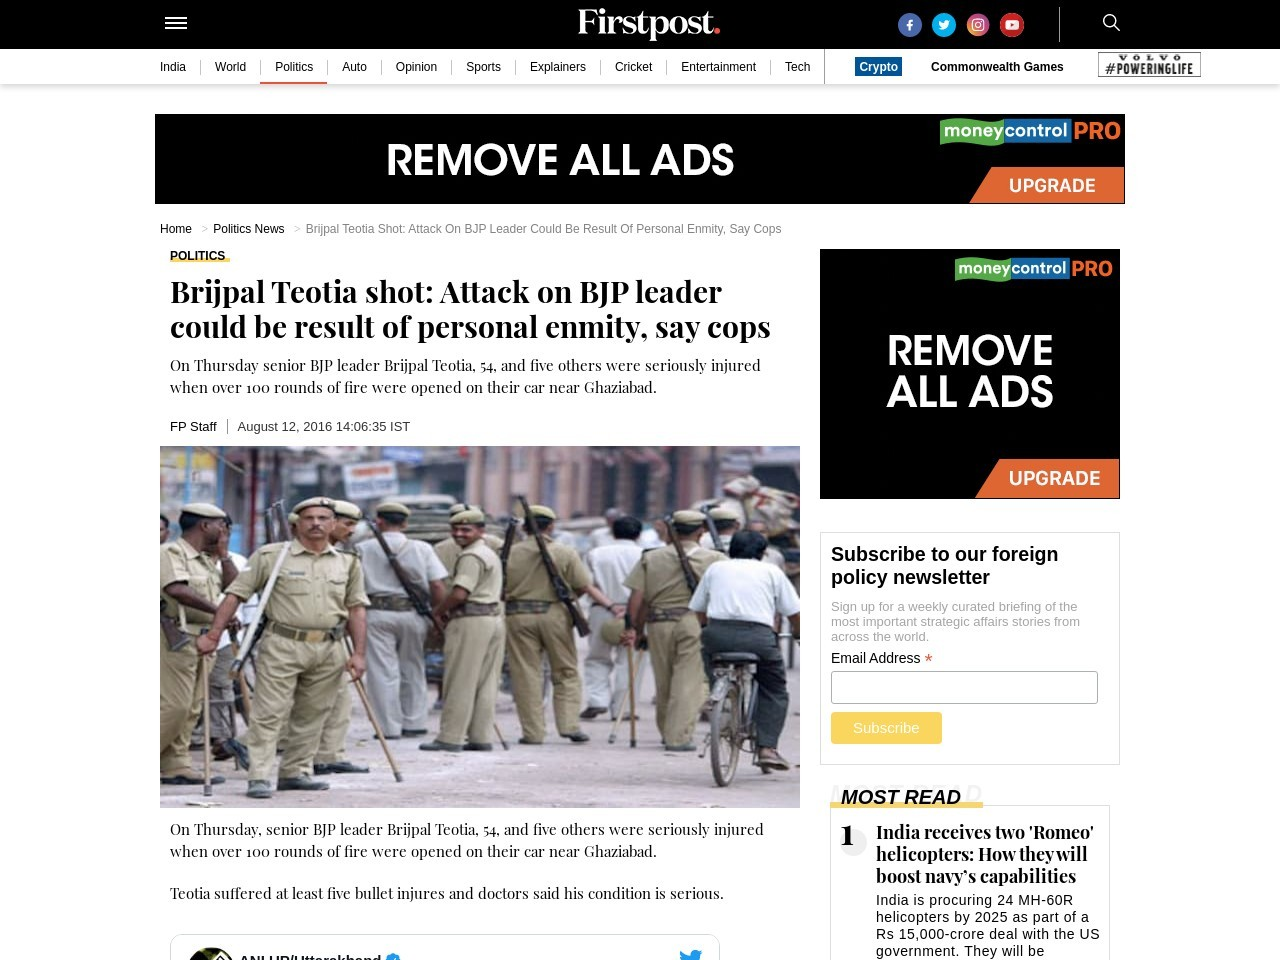 Brijpal Teotia shot: Attack on BJP leader could be result of personal enmity, say cops